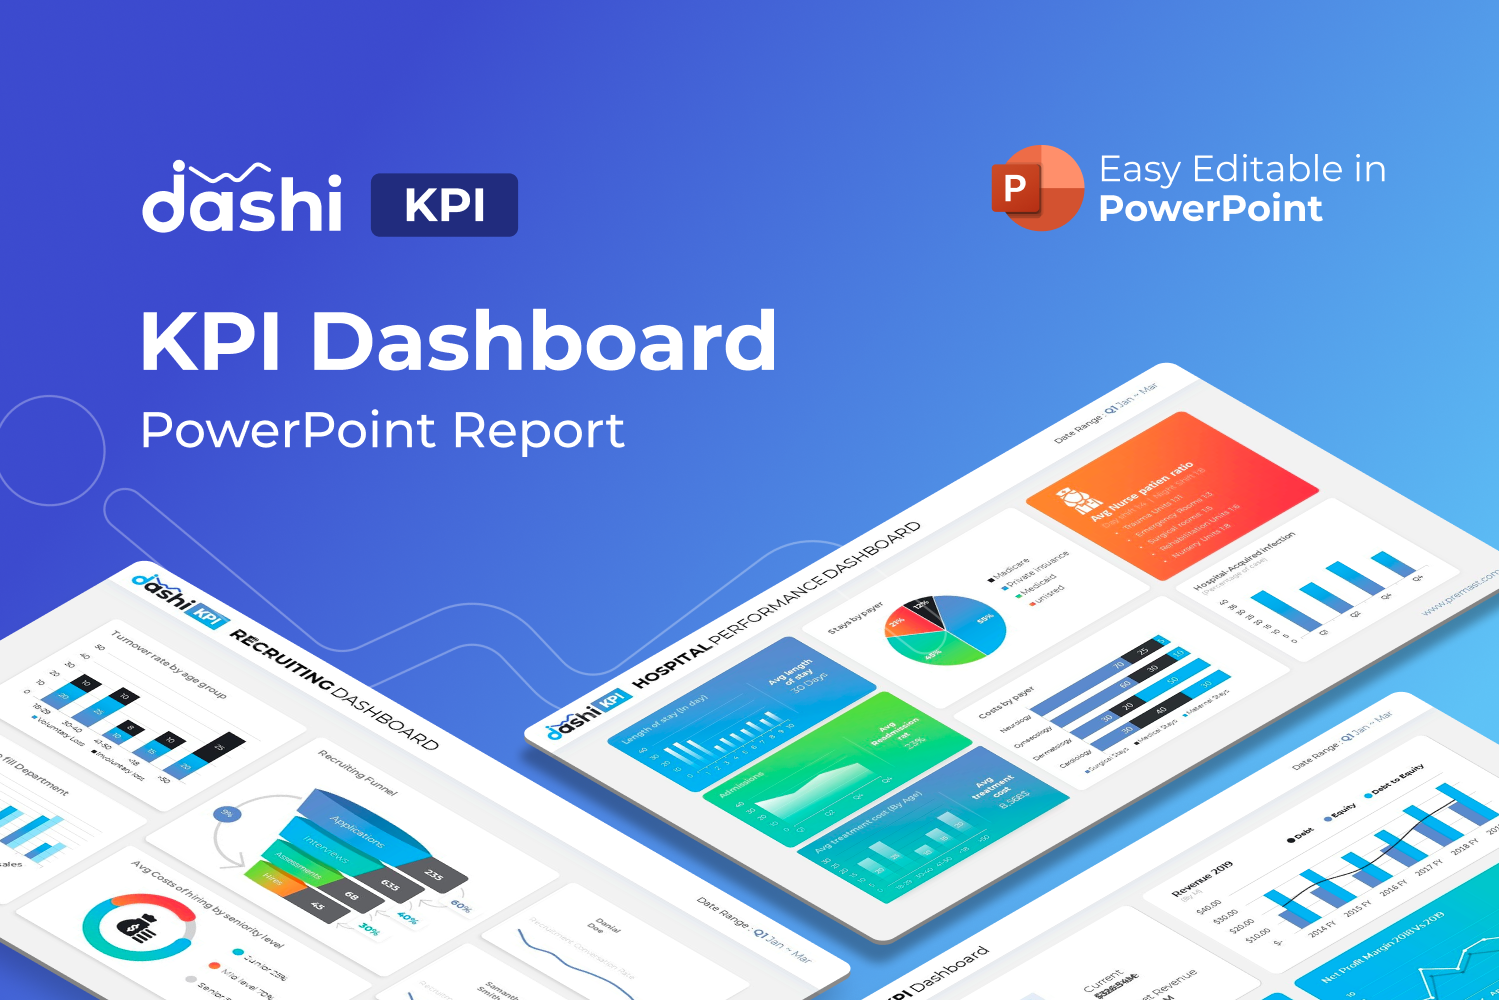 Dashi KPI – Dashboard Report Presentation PowerPoint sablon 122232